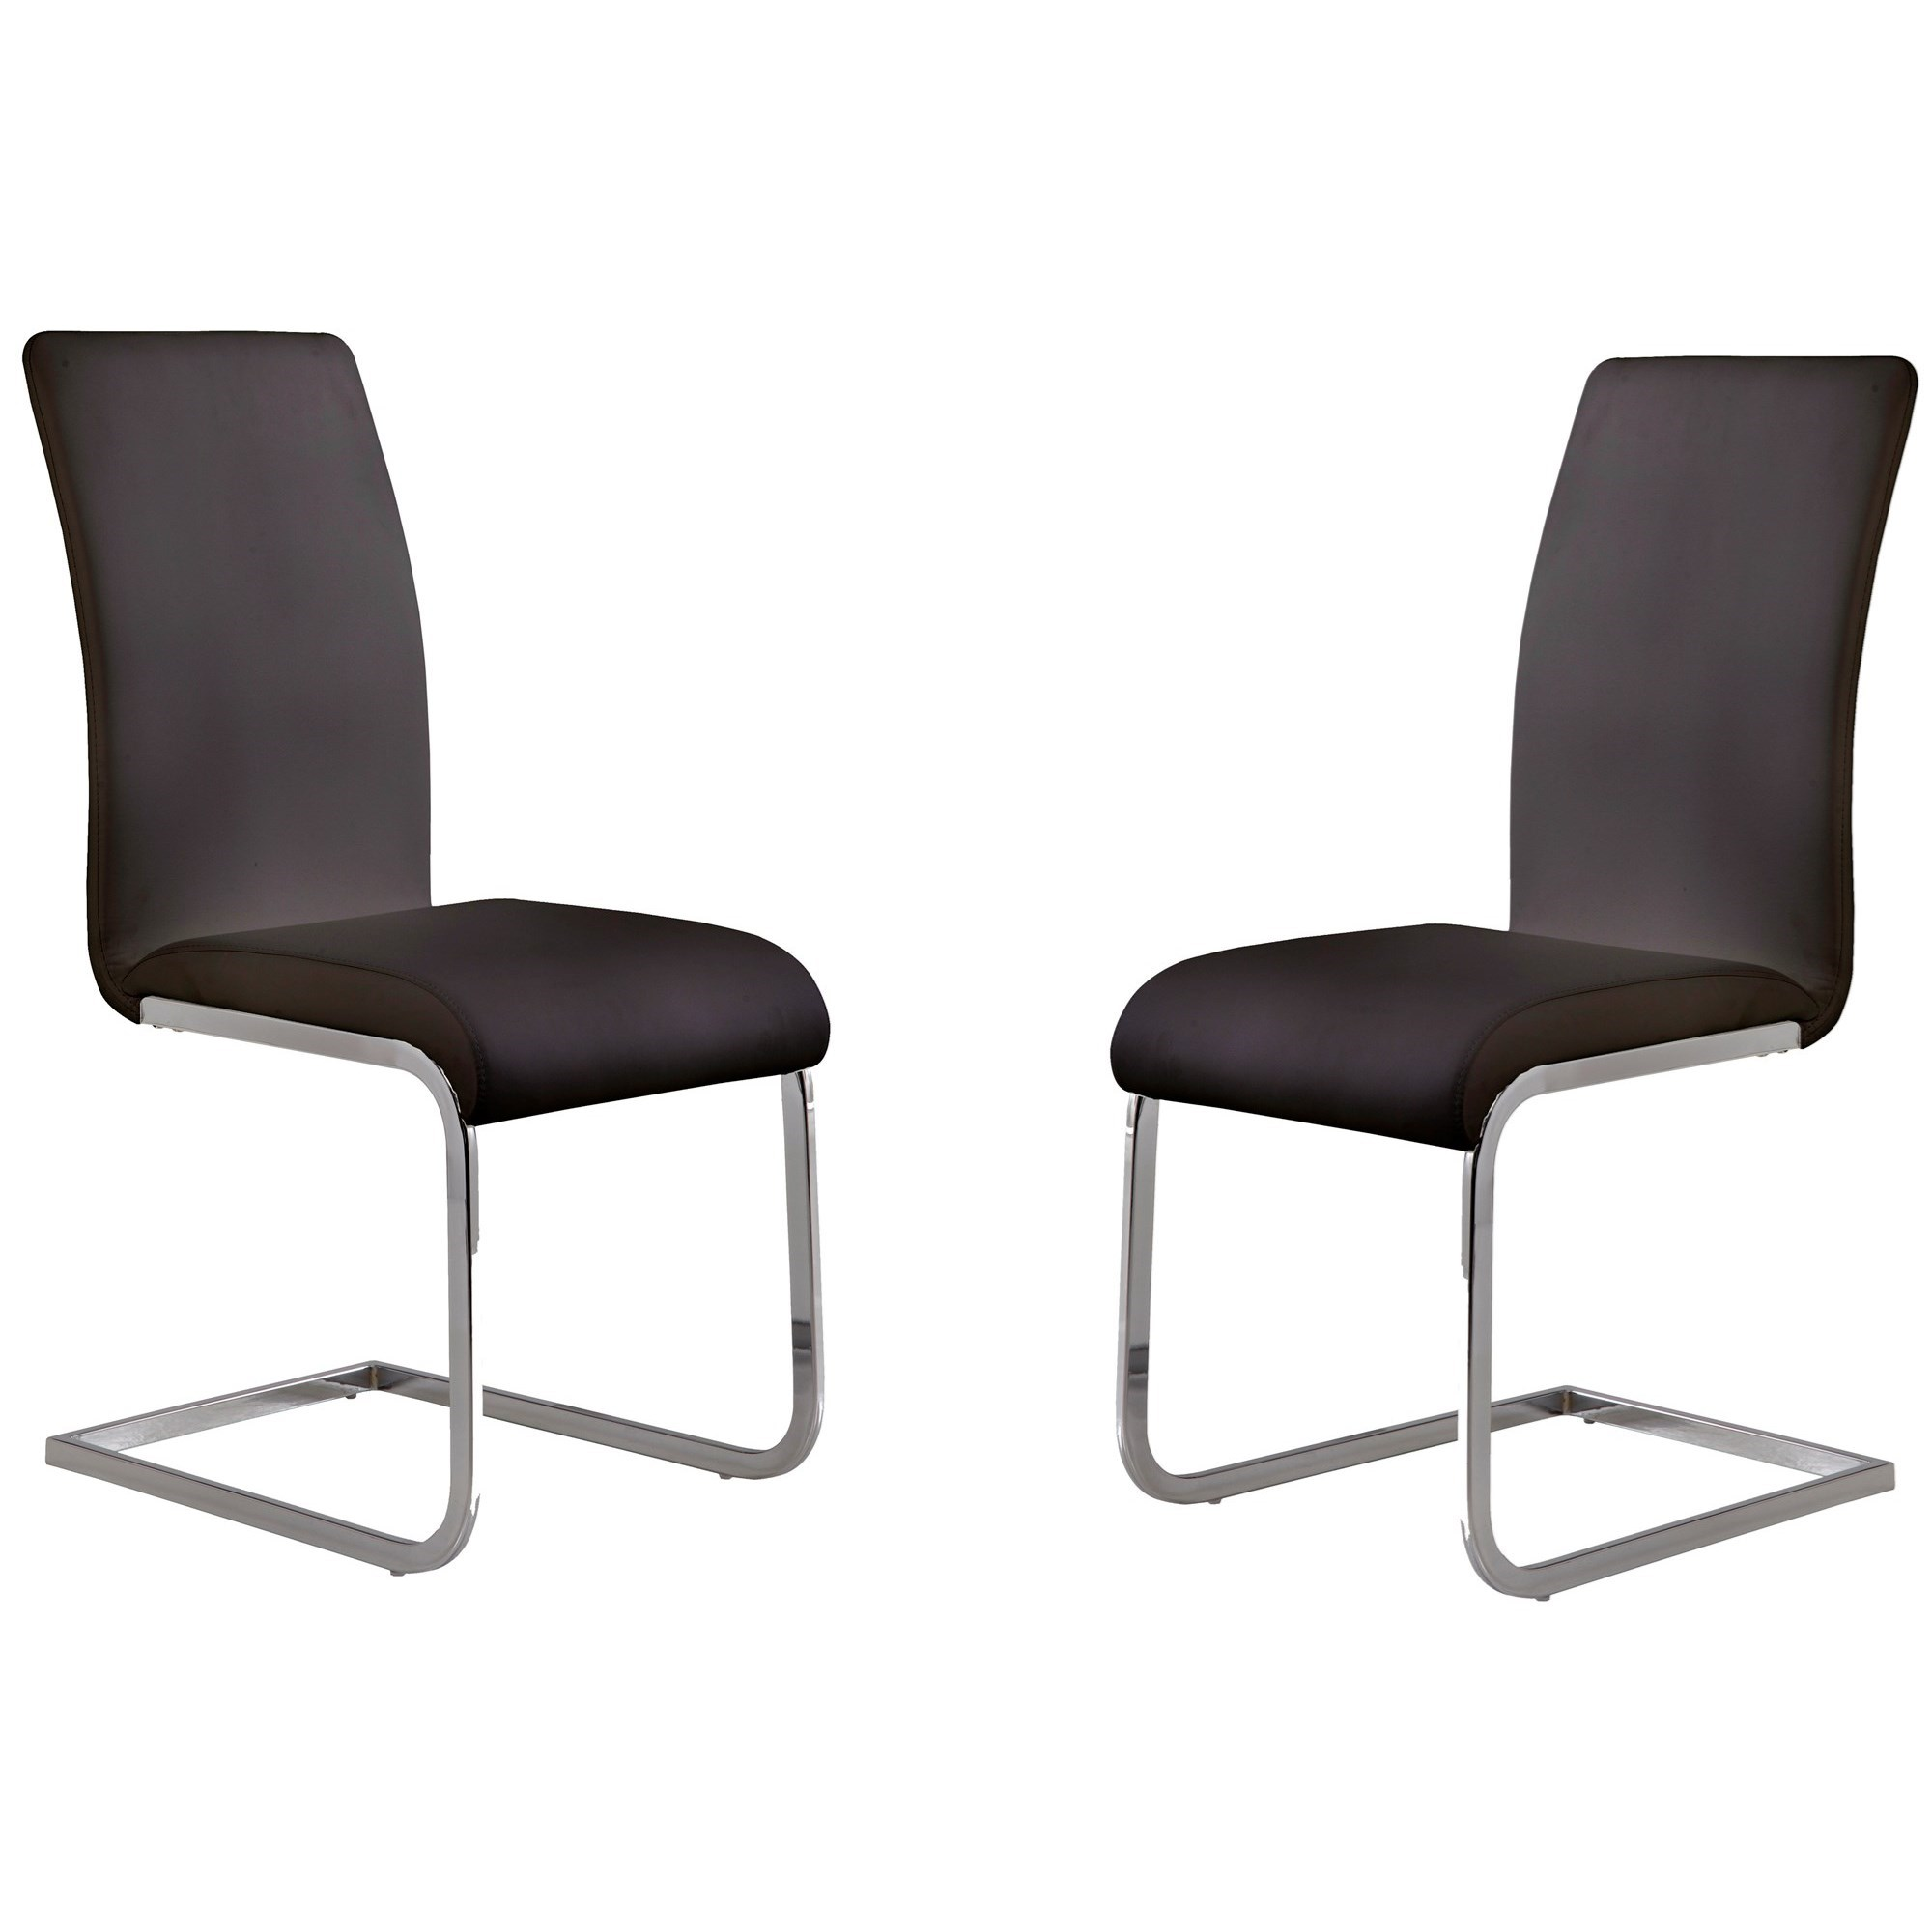 Amanda Side Chair - Set of 2 by Armen Living at Fisher Home Furnishings